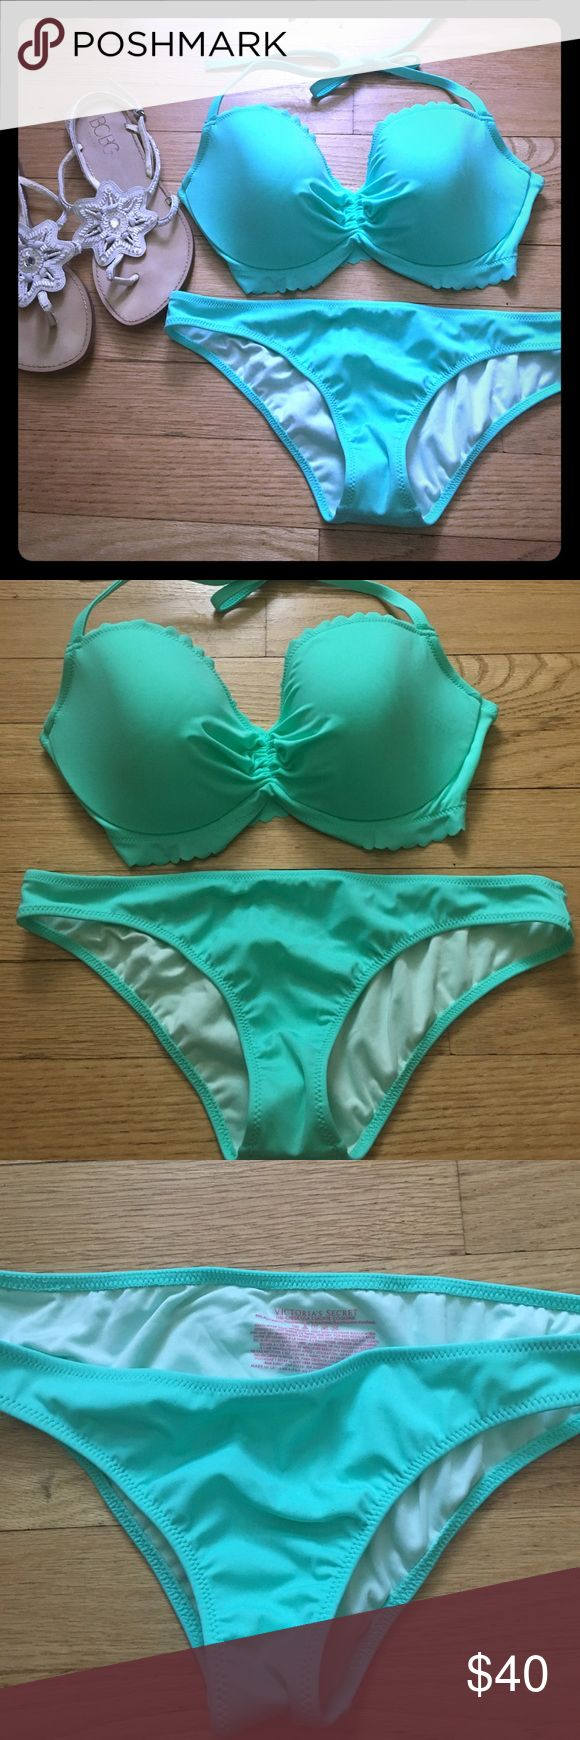 NWOT Victoria Secret mint bikini 👙 NWOT Victoria Secret mint bikini .  Getaway Halter top w/ three fits for perfect fit .  32dd Bottoms the cheeky in matching mint color to top- small. Never been worn! Victoria's Secret Swim Bikinis